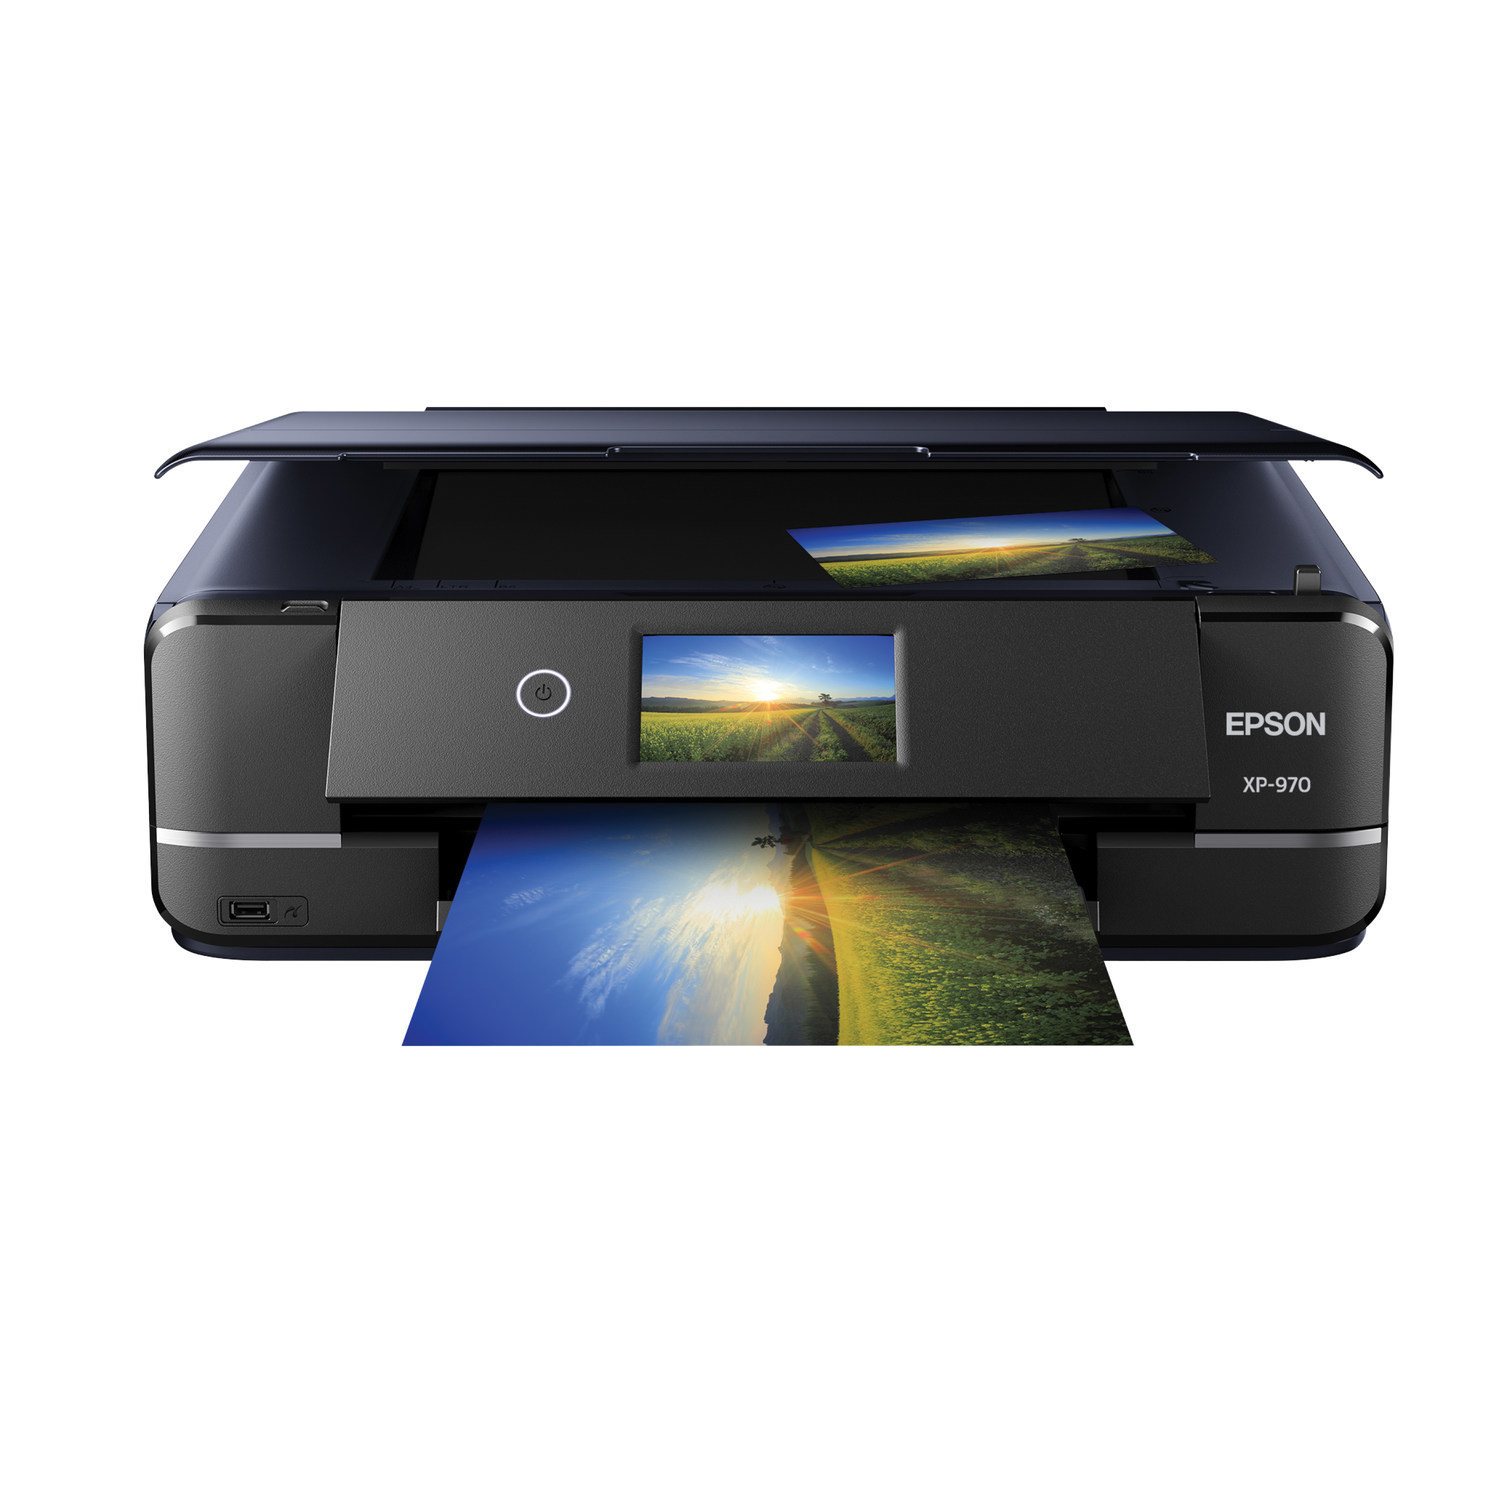 Epson Expression Photo Small-In-One XP-970 Printer